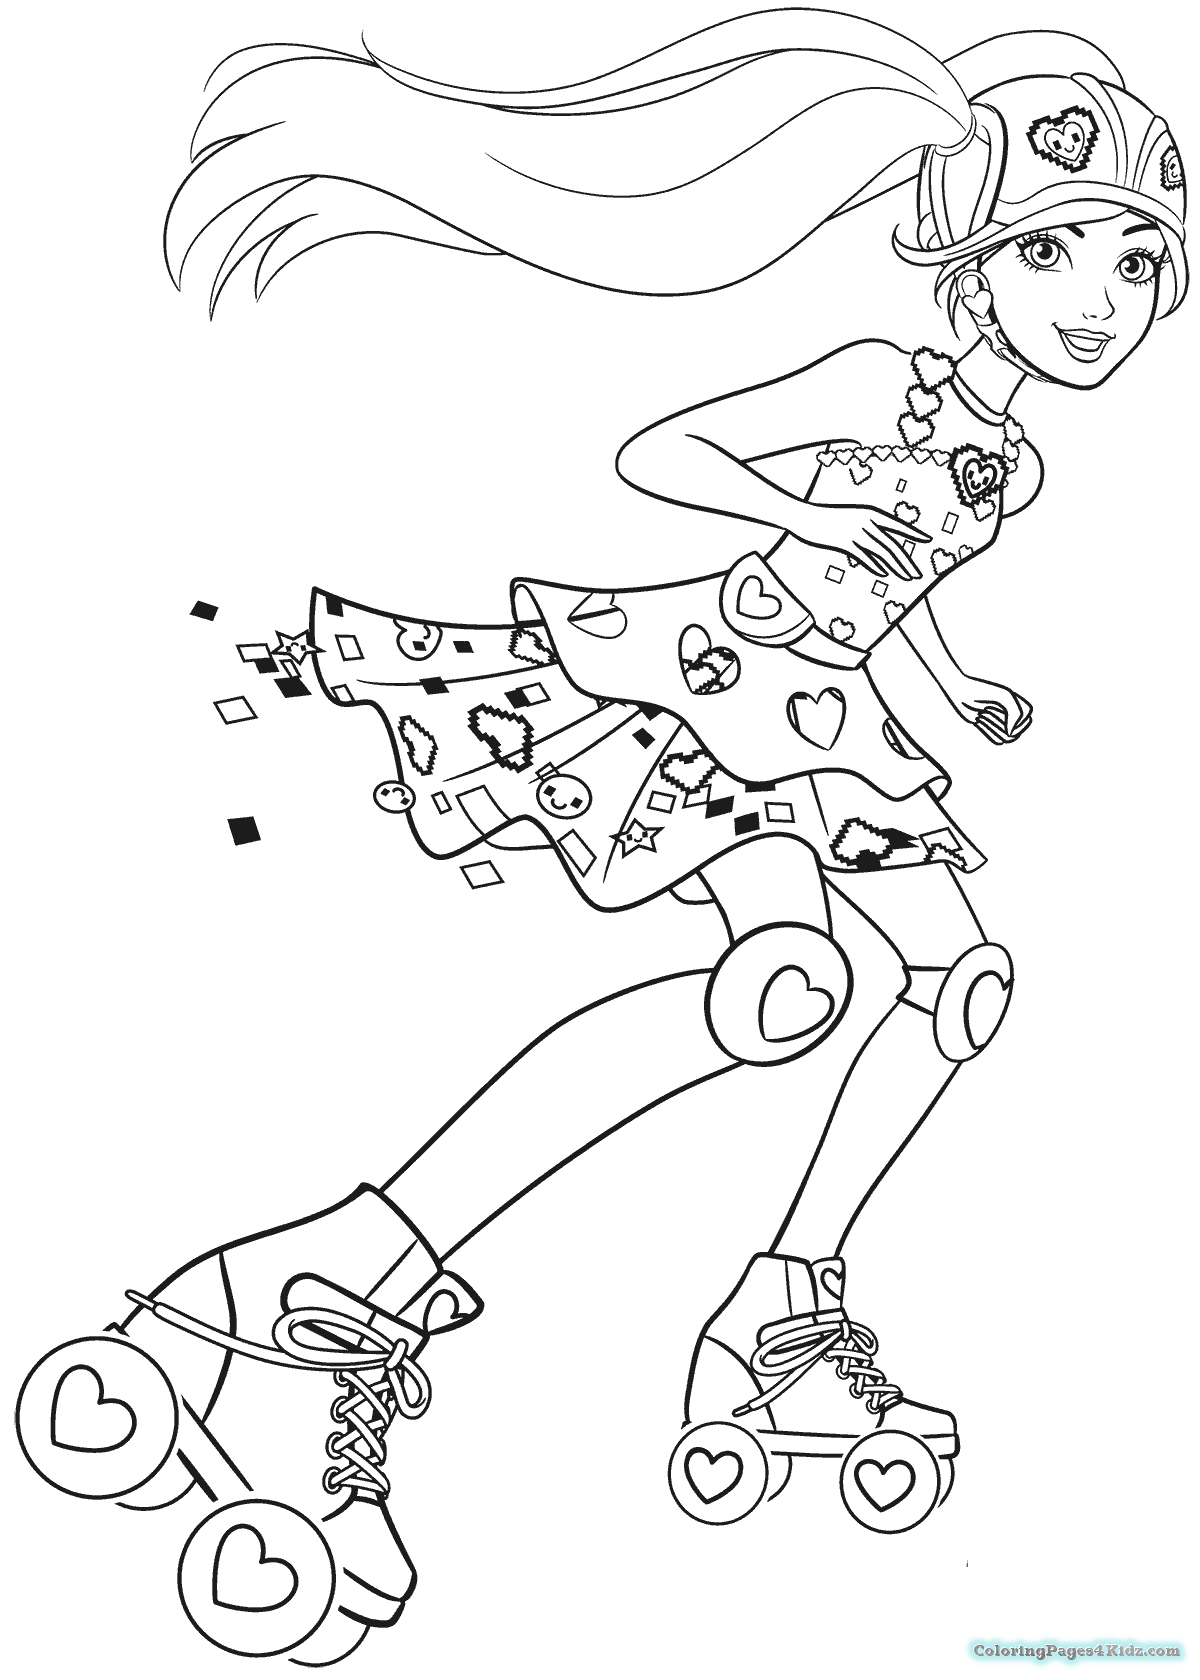 Video Game Coloring Sheets